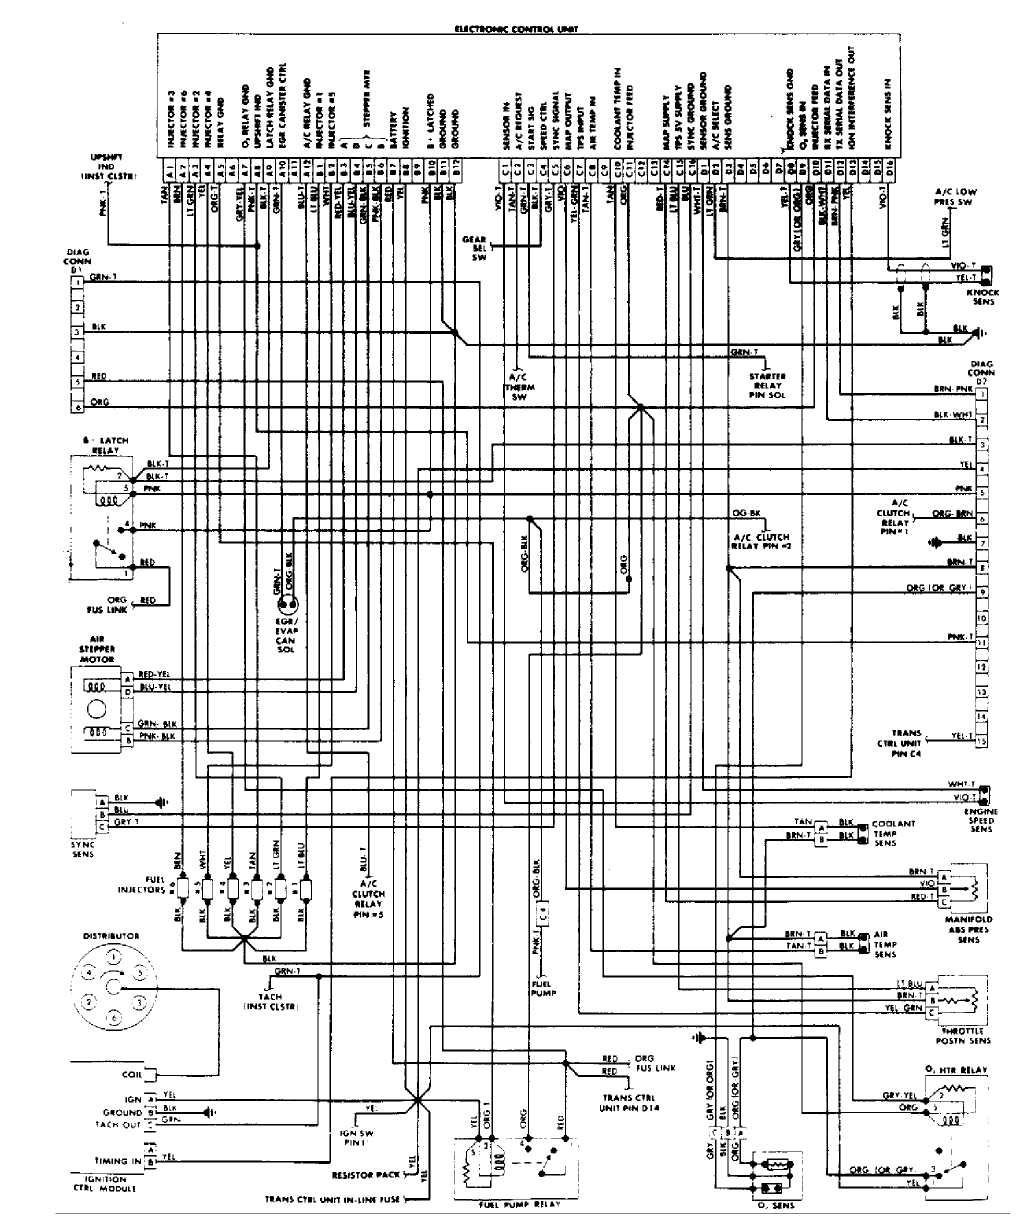 wiring diagram caterpillar ecm the wiring diagram cat c12 wiring diagram cat wiring diagrams for car or truck wiring